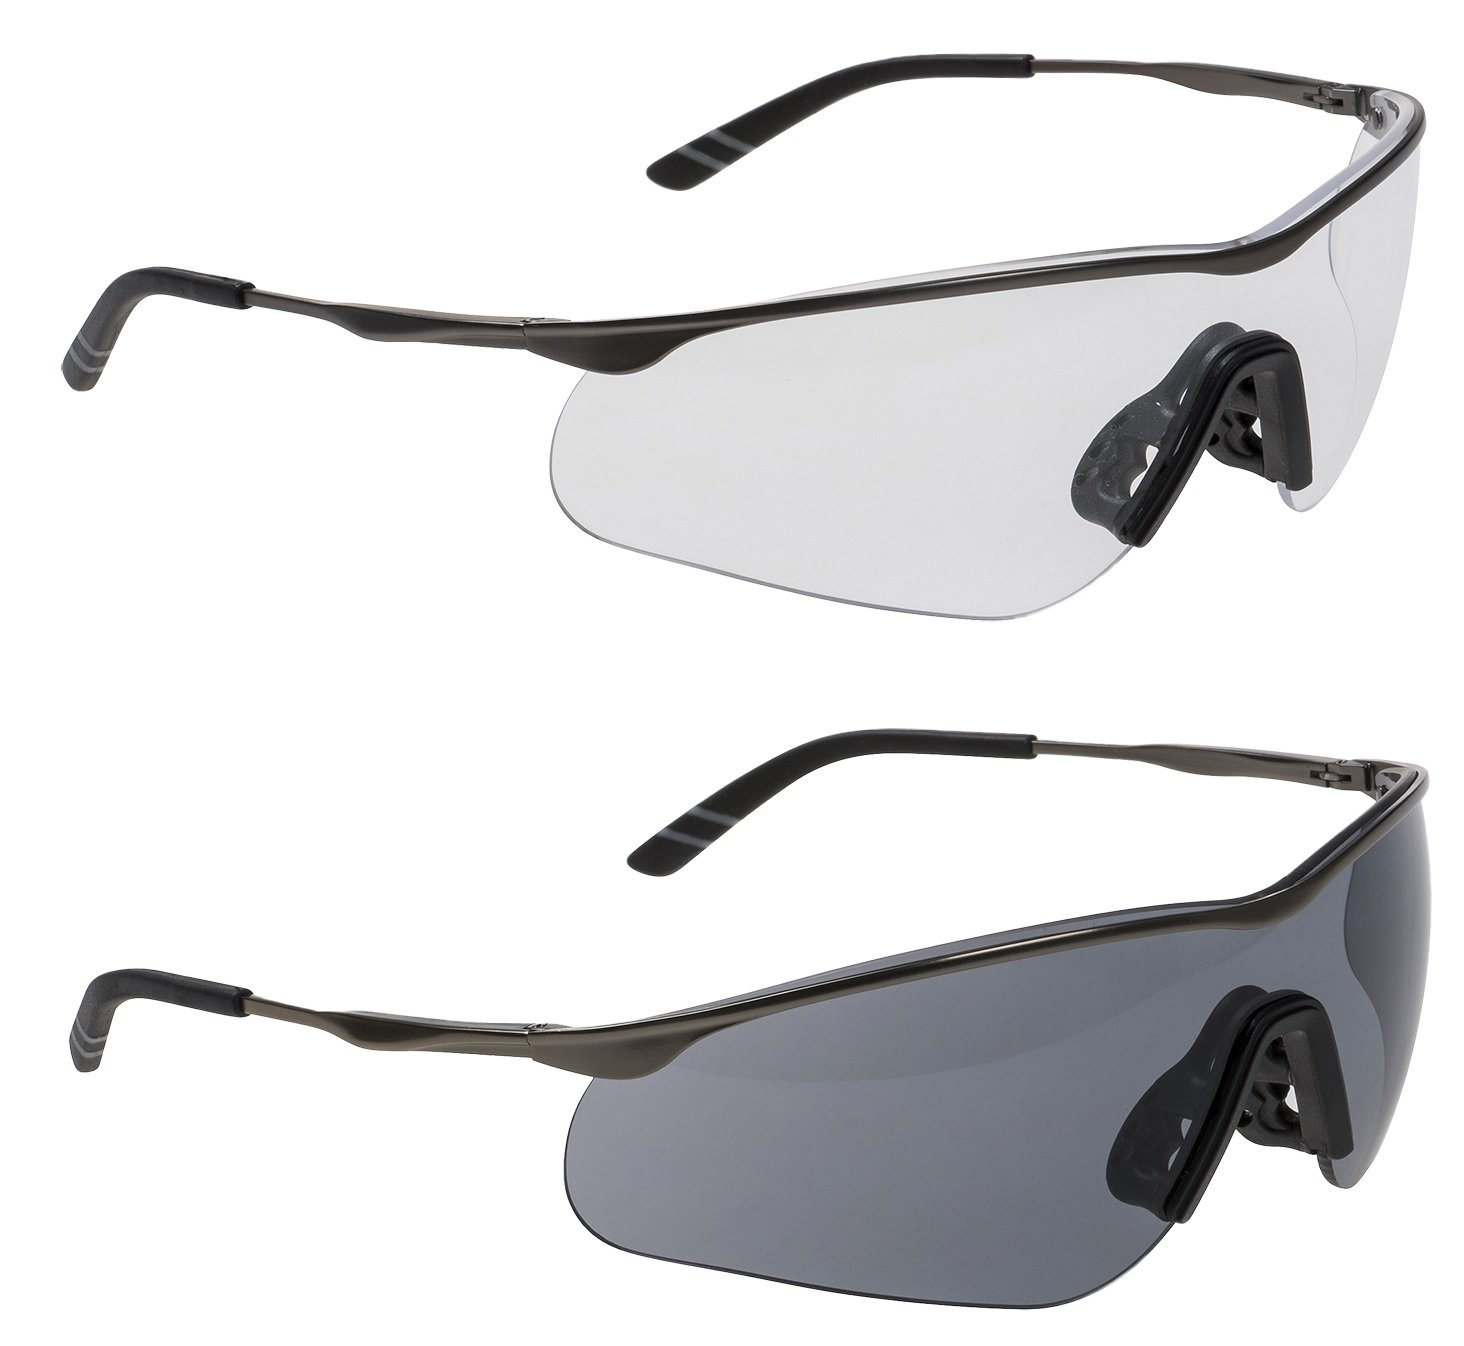 b59b3ffec72 PS16 Metal Frame Safety Glasses - Eye Protection